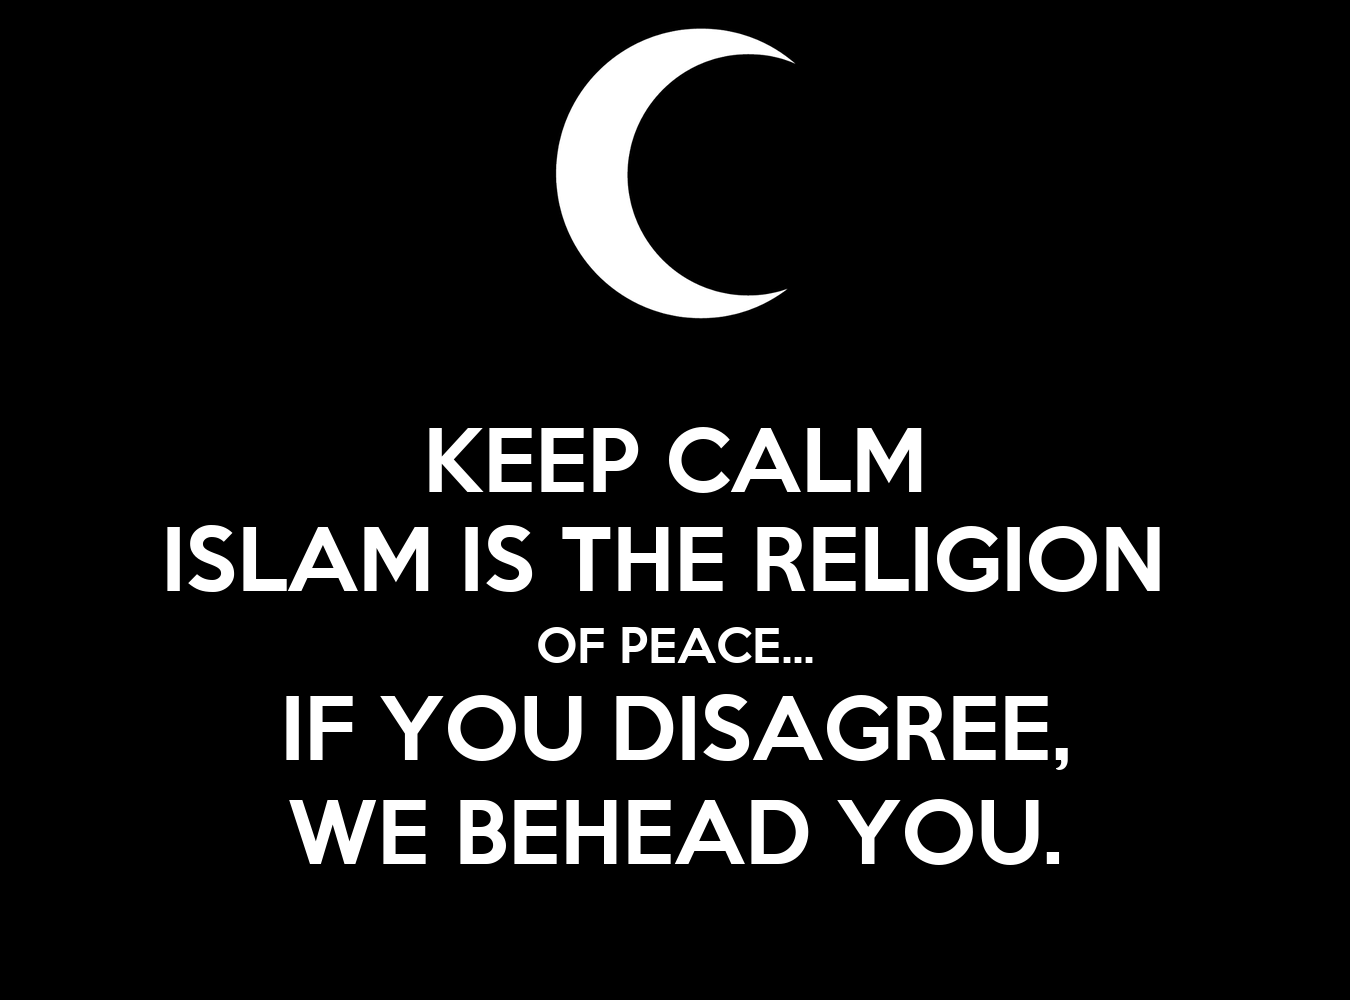 is islam a religion of peace pdf